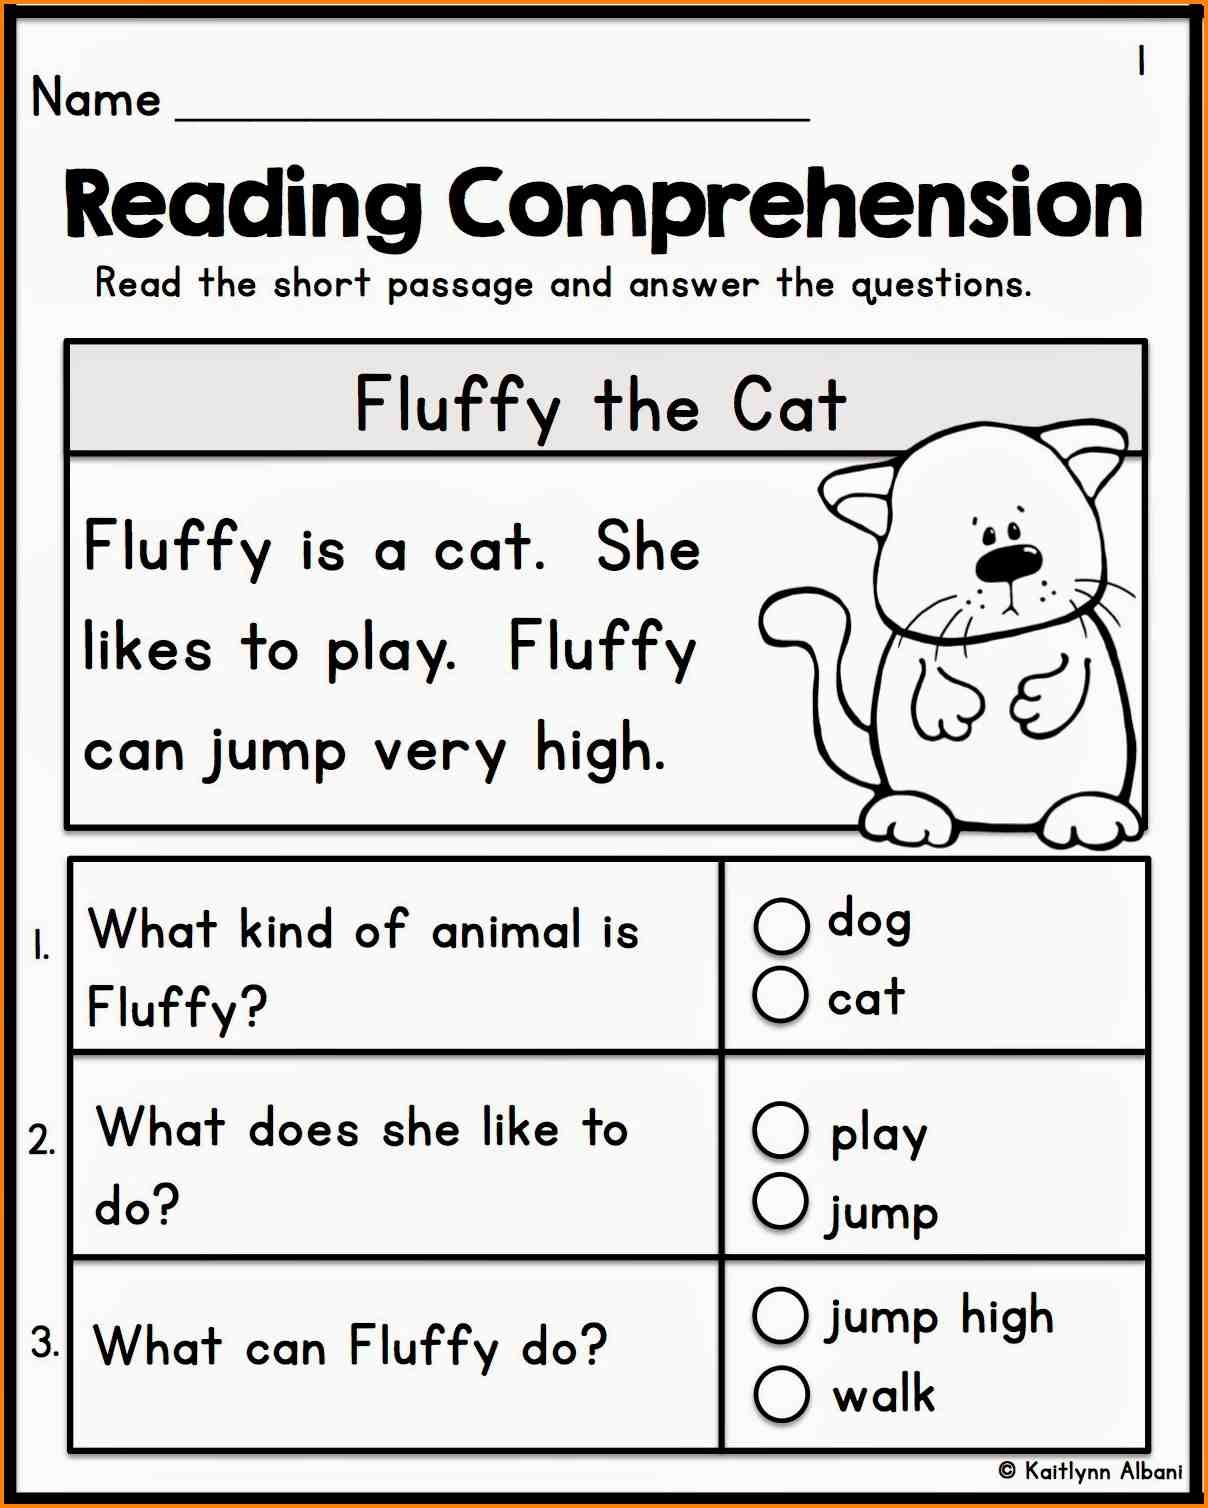 Reading Comprehension For Preschool Preschoolworksheet